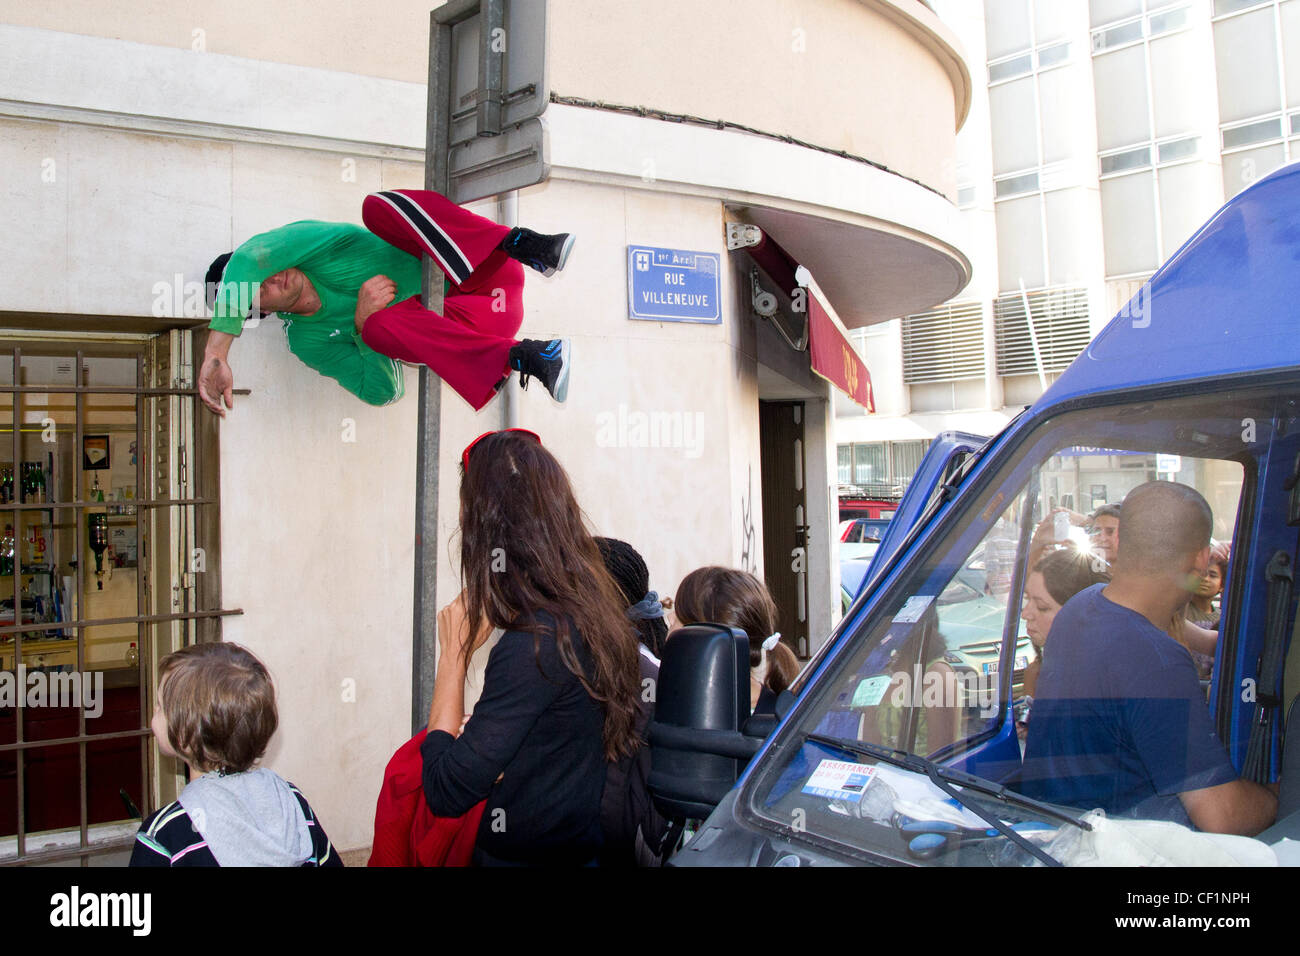 Bodies in Urban Spaces Dance Troupe performing in Marseille - Stock Image